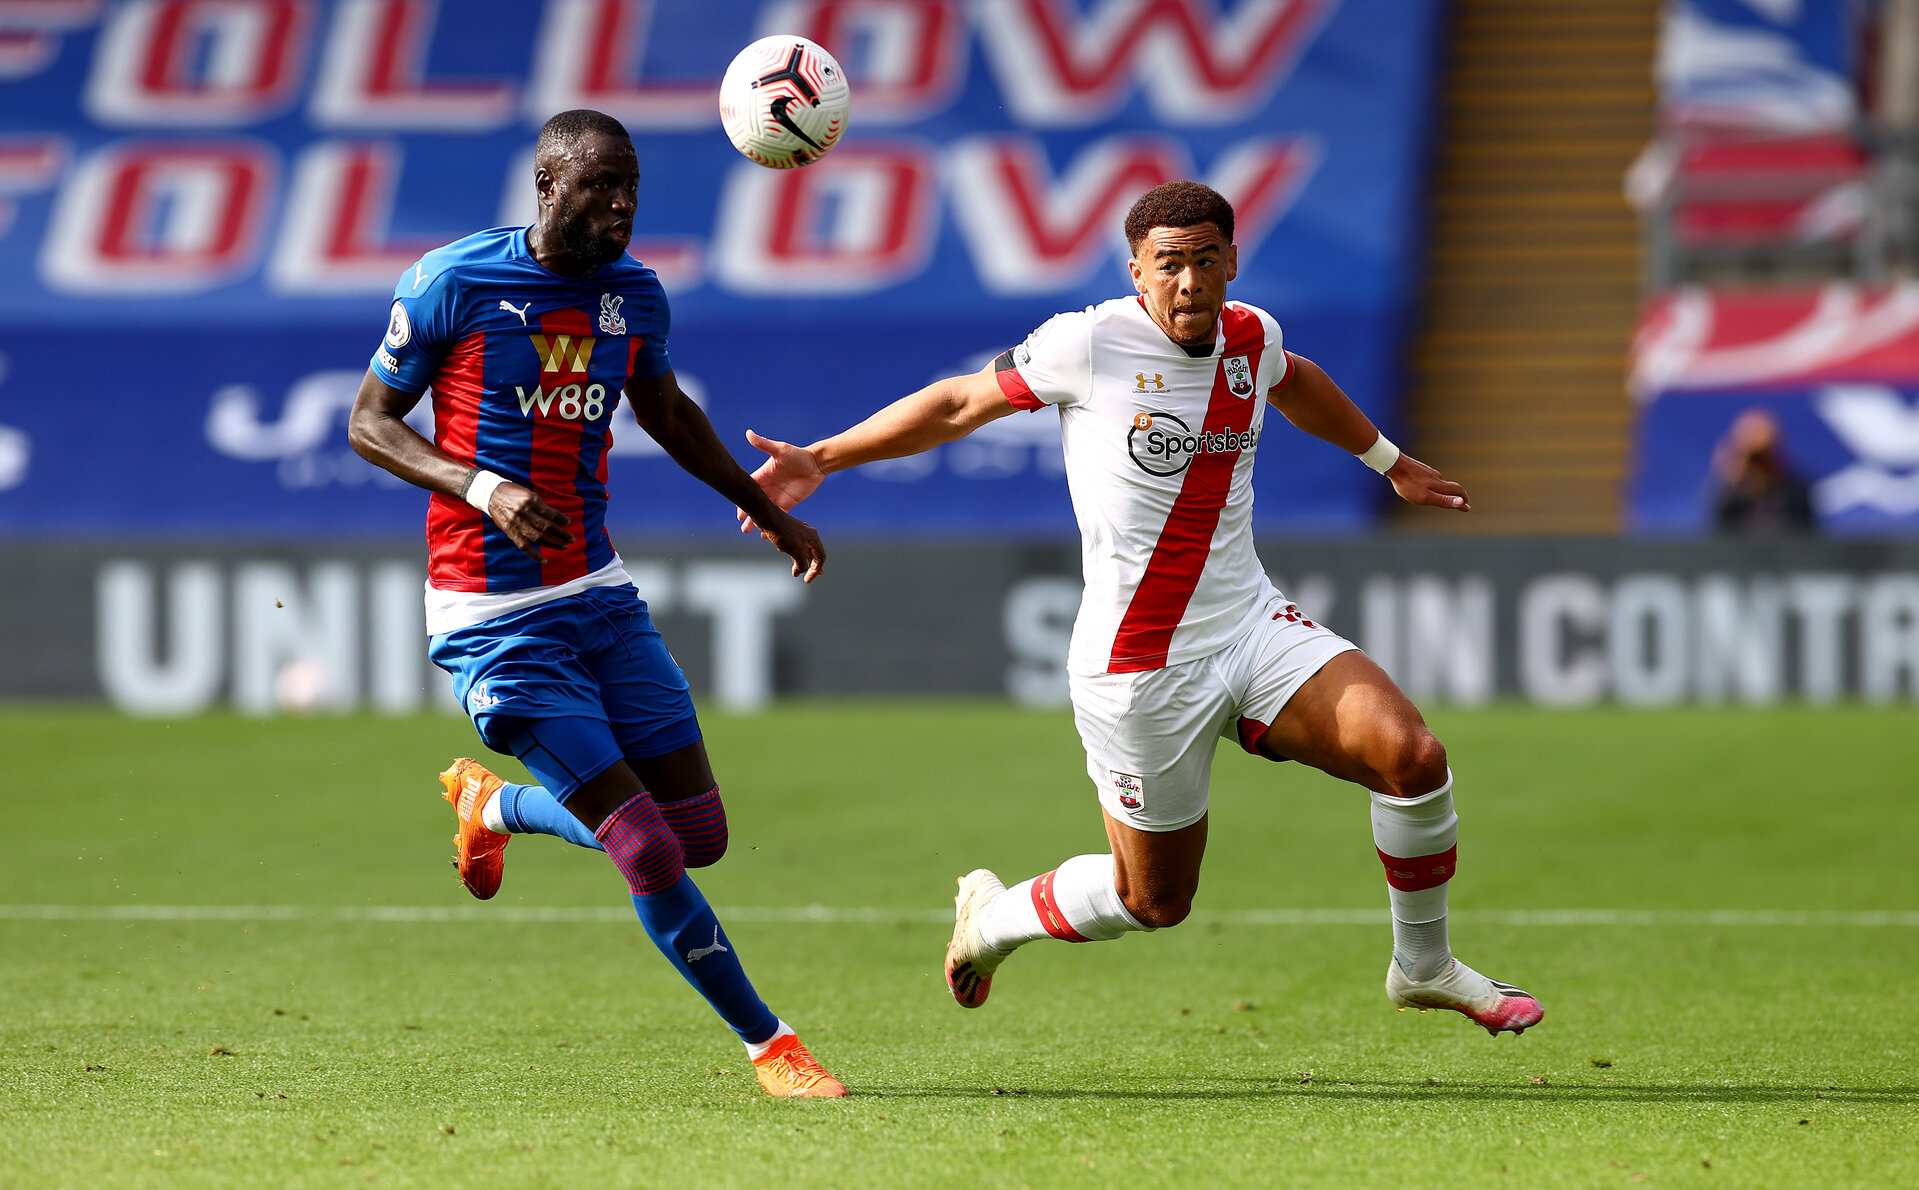 LONDON, ENGLAND - SEPTEMBER 12: Cheikhou Kouyate(L) of Crystal Palace and Ché Adams(R) of Southampton during the Premier League match between Crystal Palace and Southampton at Selhurst Park on September 12, 2020 in London, United Kingdom. (Photo by Matt Watson/Southampton FC via Getty Images)